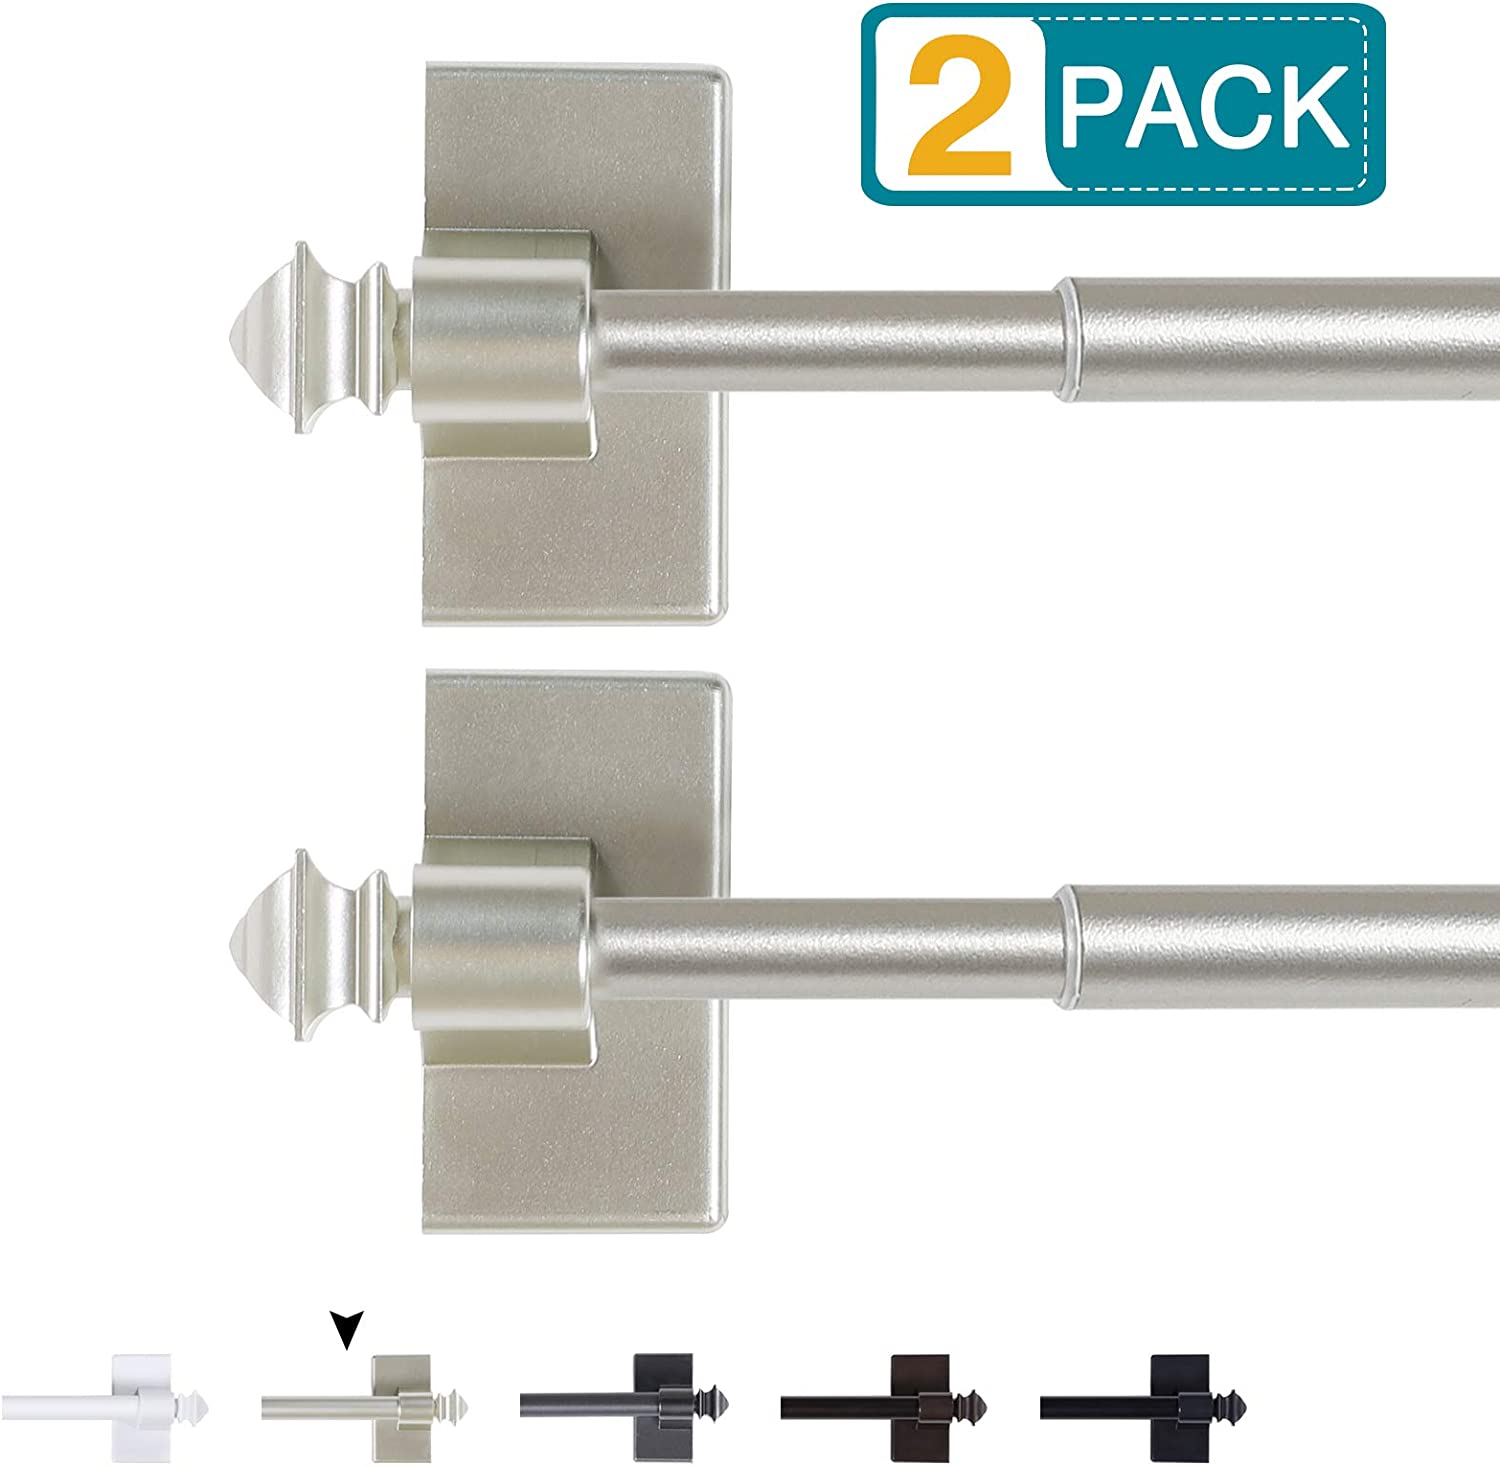 Magnetic Curtain Rods for Metal Doors Multi-Use Adjustable Curtain Rods for Small Windows Cafe Sidelight and Iron Steel Places, 1/2 Inch Diameter, Tool Free (2 Pack, Adjust from 16 to 28 Inch, Nickel)